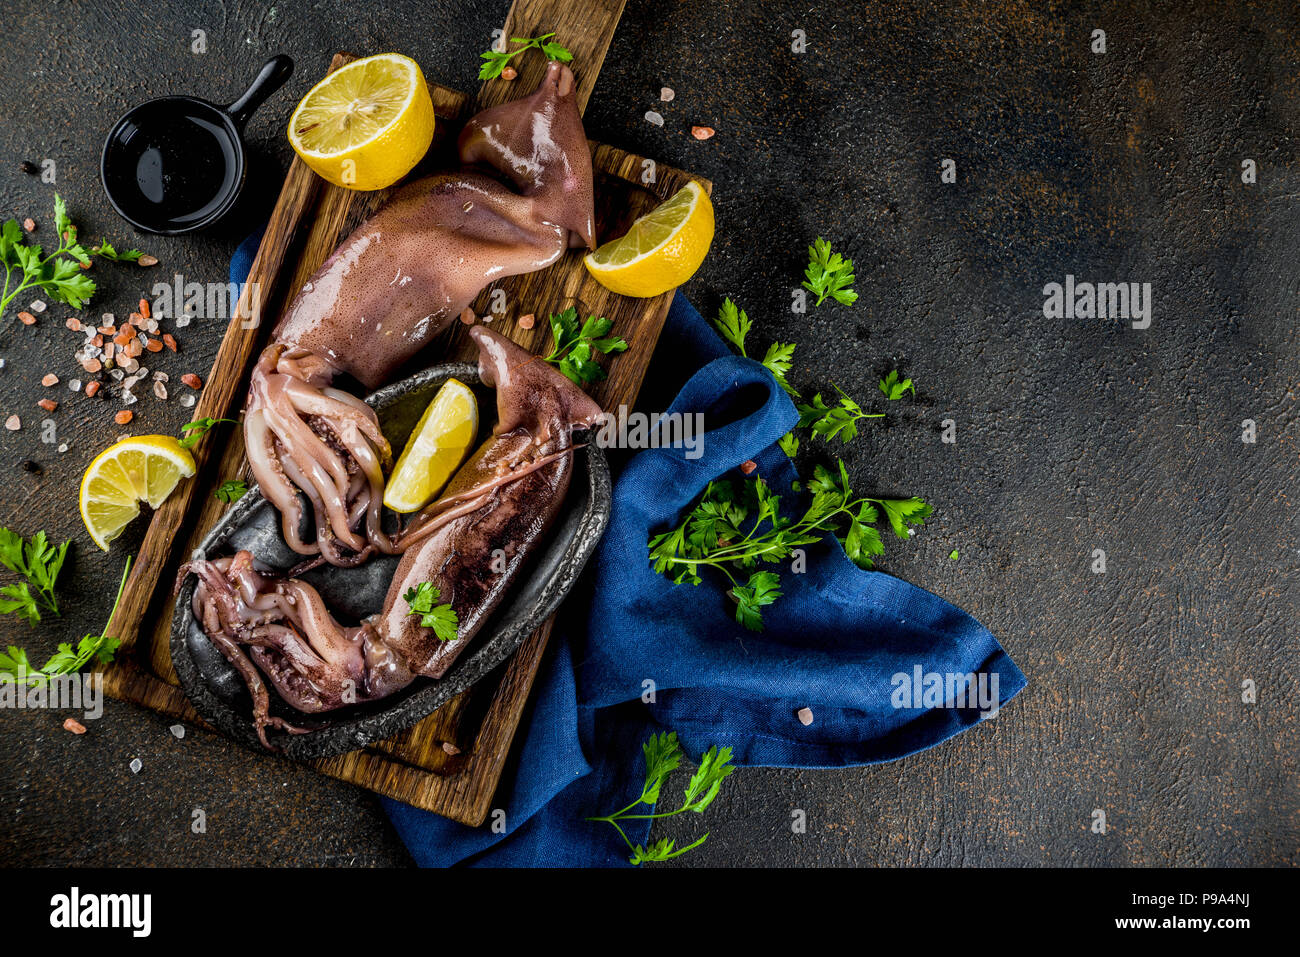 Fresh raw seafood, squid with lemon and light for preparation on a light blue background - Stock Image